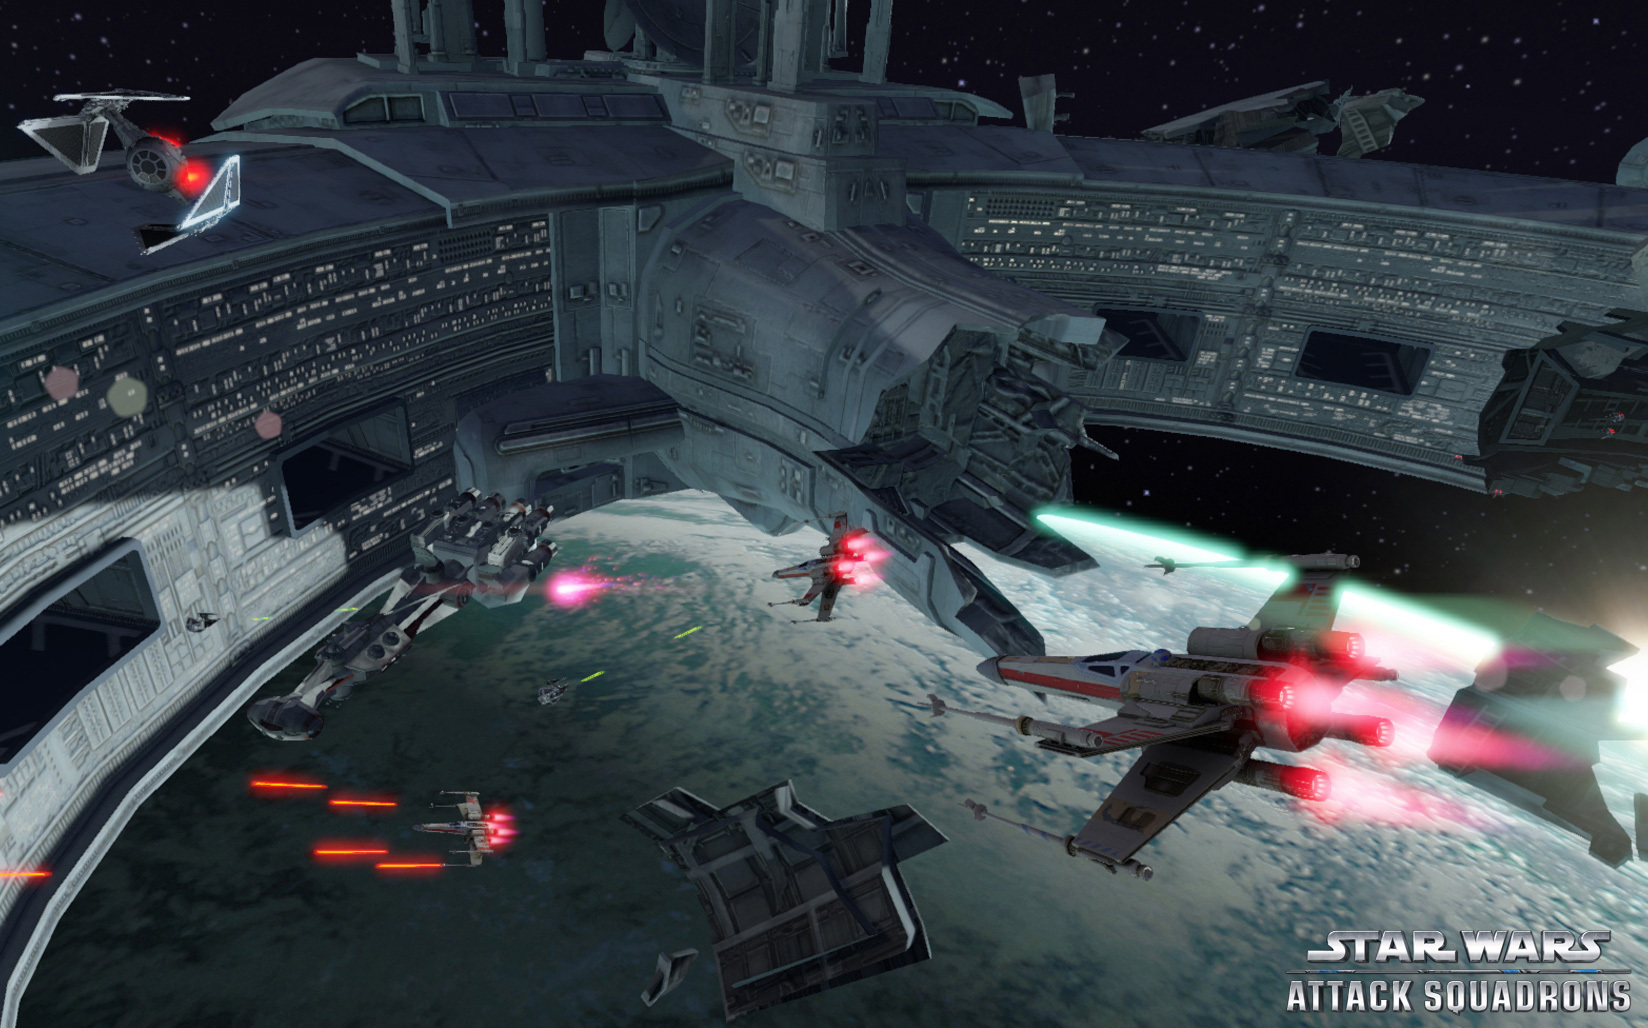 star_wars_attack_squadrons_screenshot_d0ead317